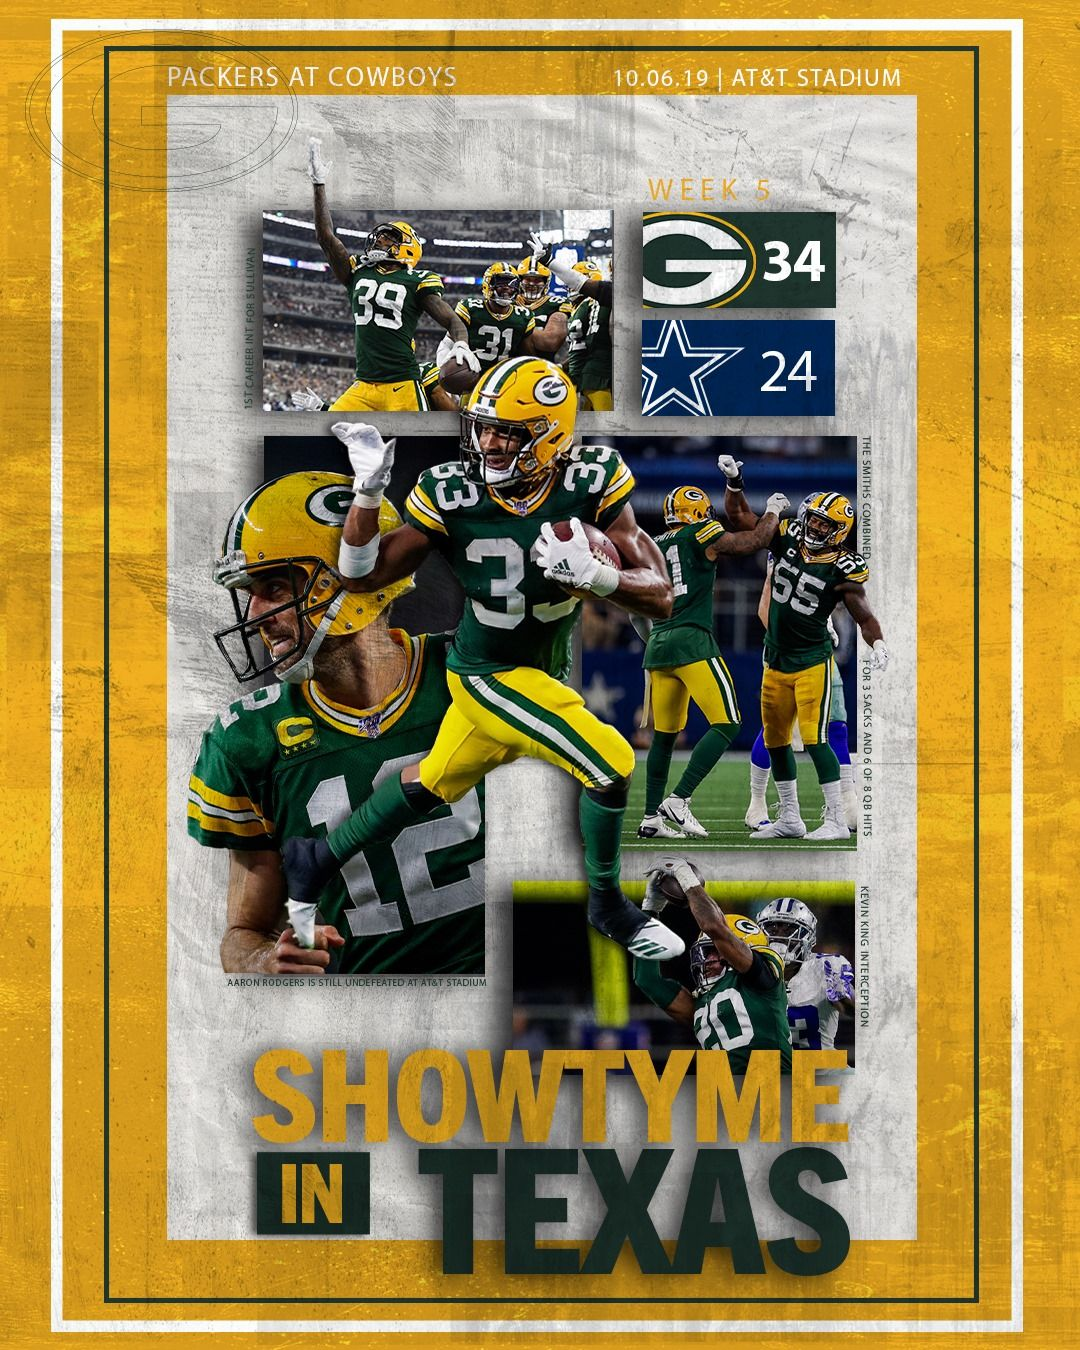 Showtyme In Texas Week 5 Victory Poster Gopackgo Green Bay Packers Green Bay Packers